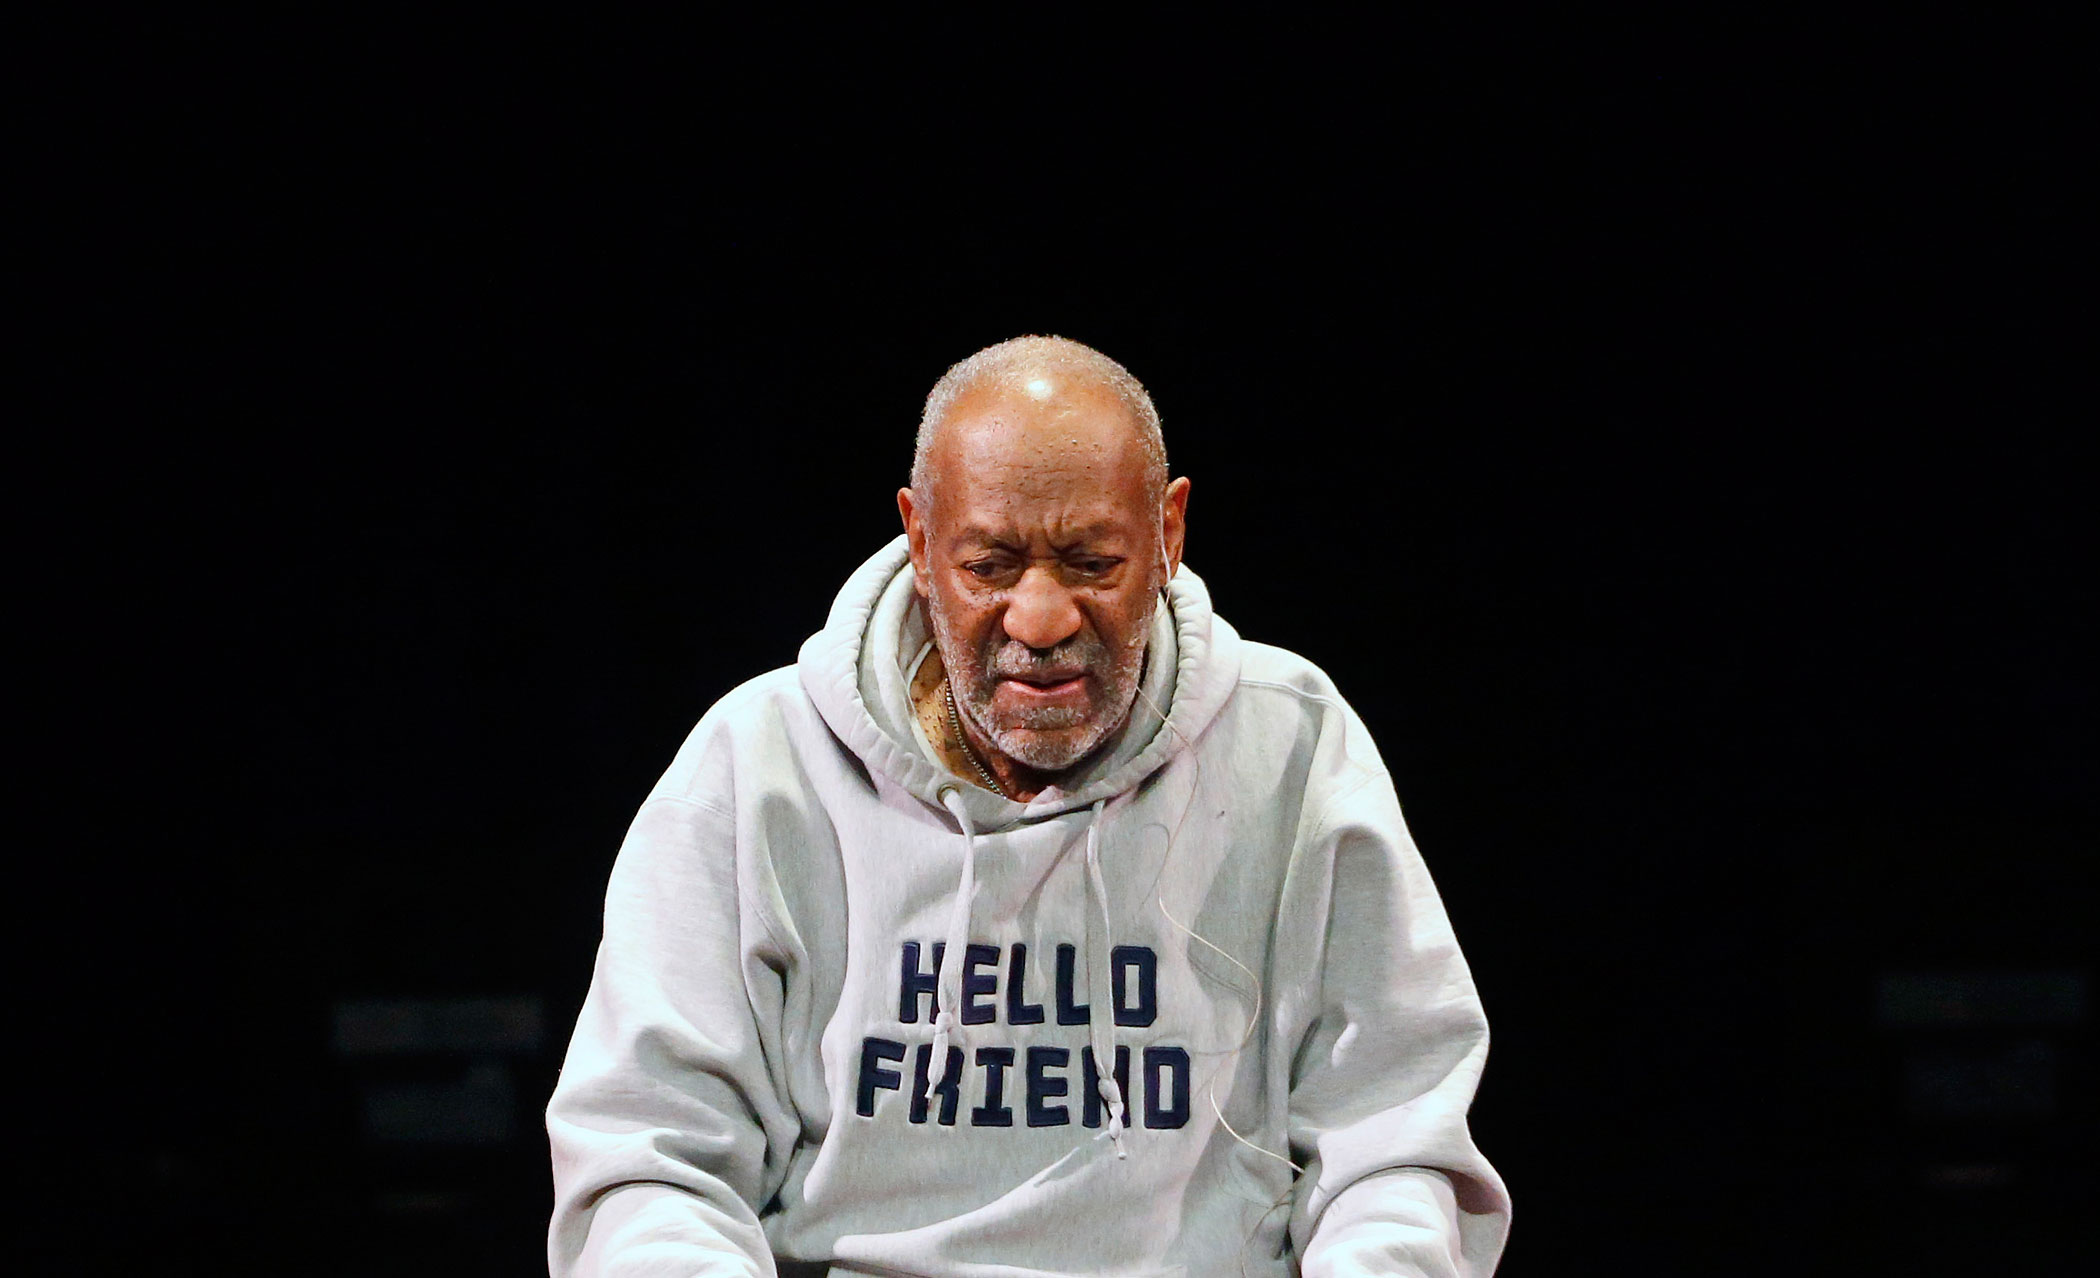 Bill Cosby performs at the Buell Theater in Denver, Colo., Jan. 17, 2015.